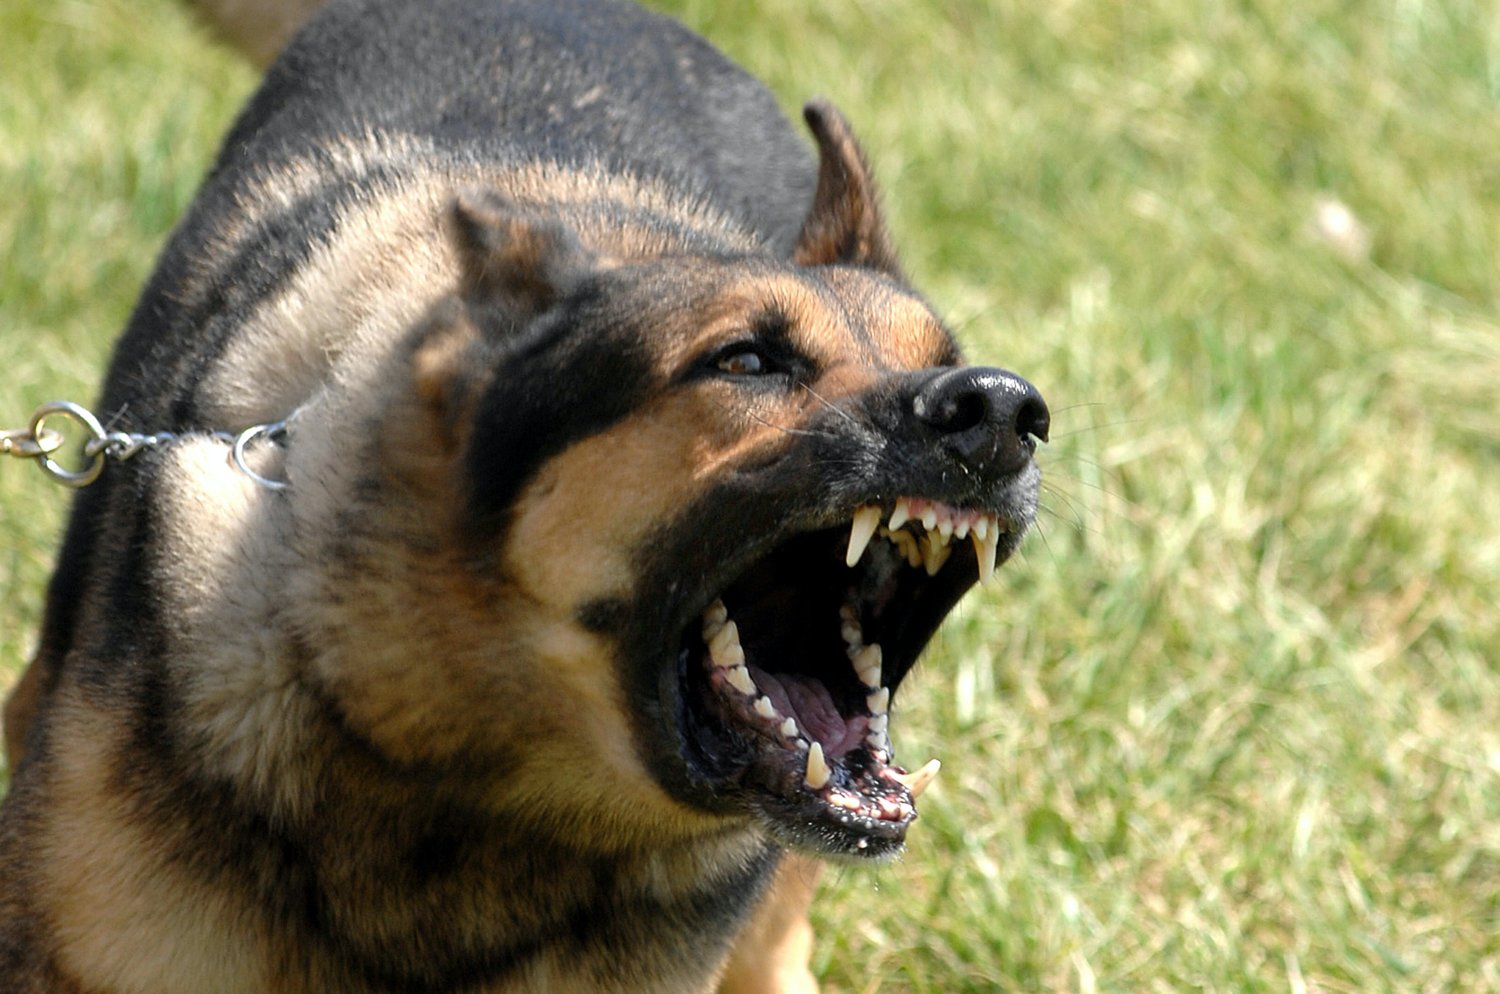 A complaint about a barking dog that has involved an arrest were heard Nov. 3 by the Philadelphia Mayor and Board of Aldermen.